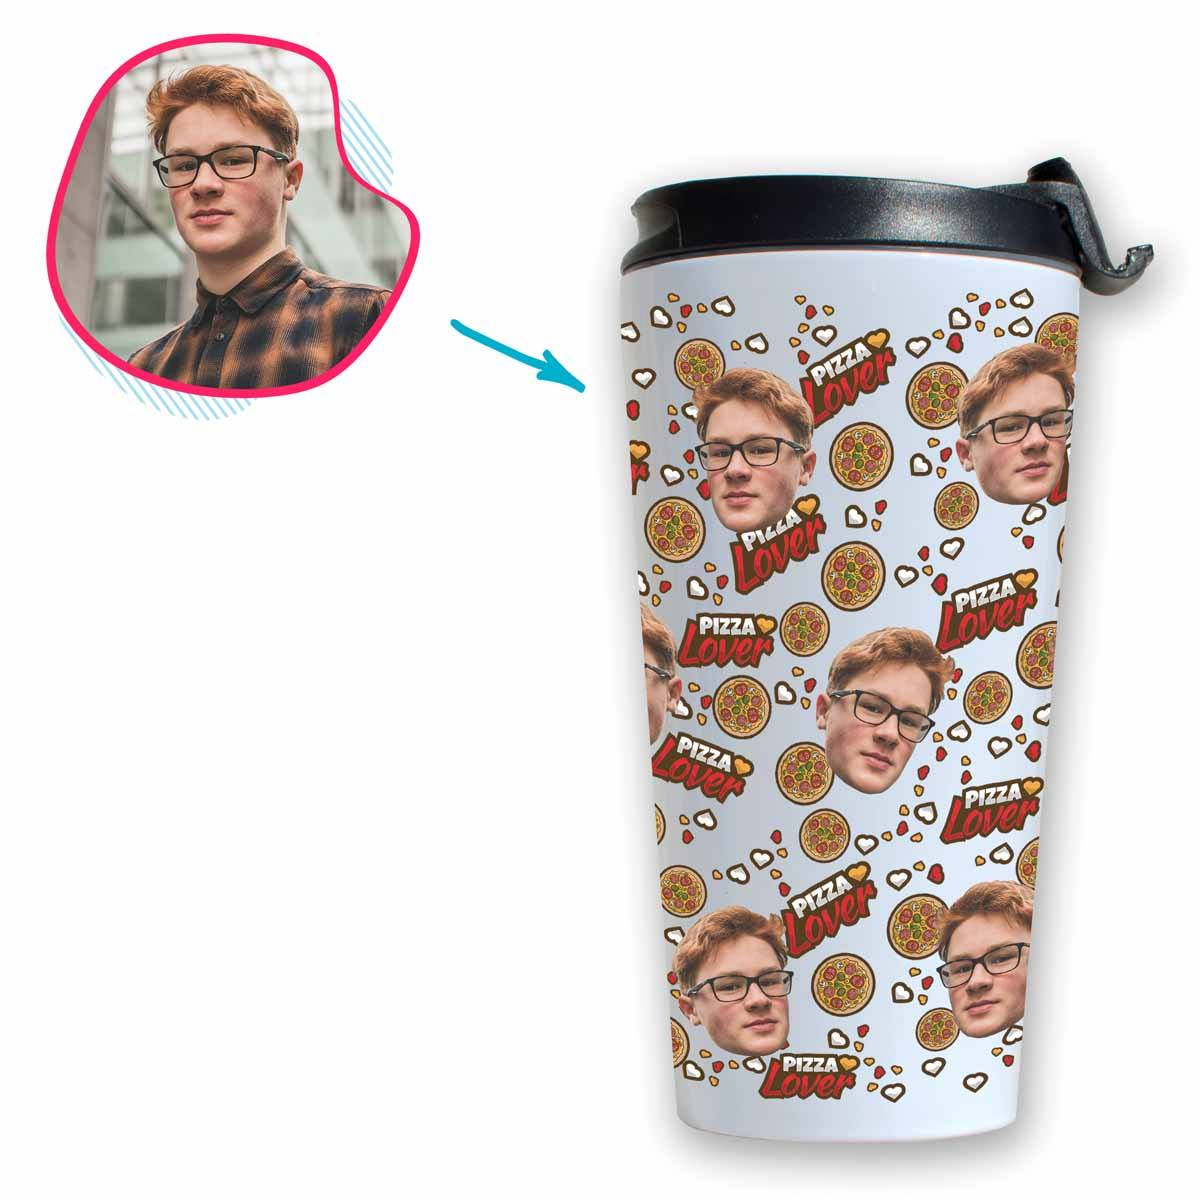 white Pizza Lover travel mug personalized with photo of face printed on it